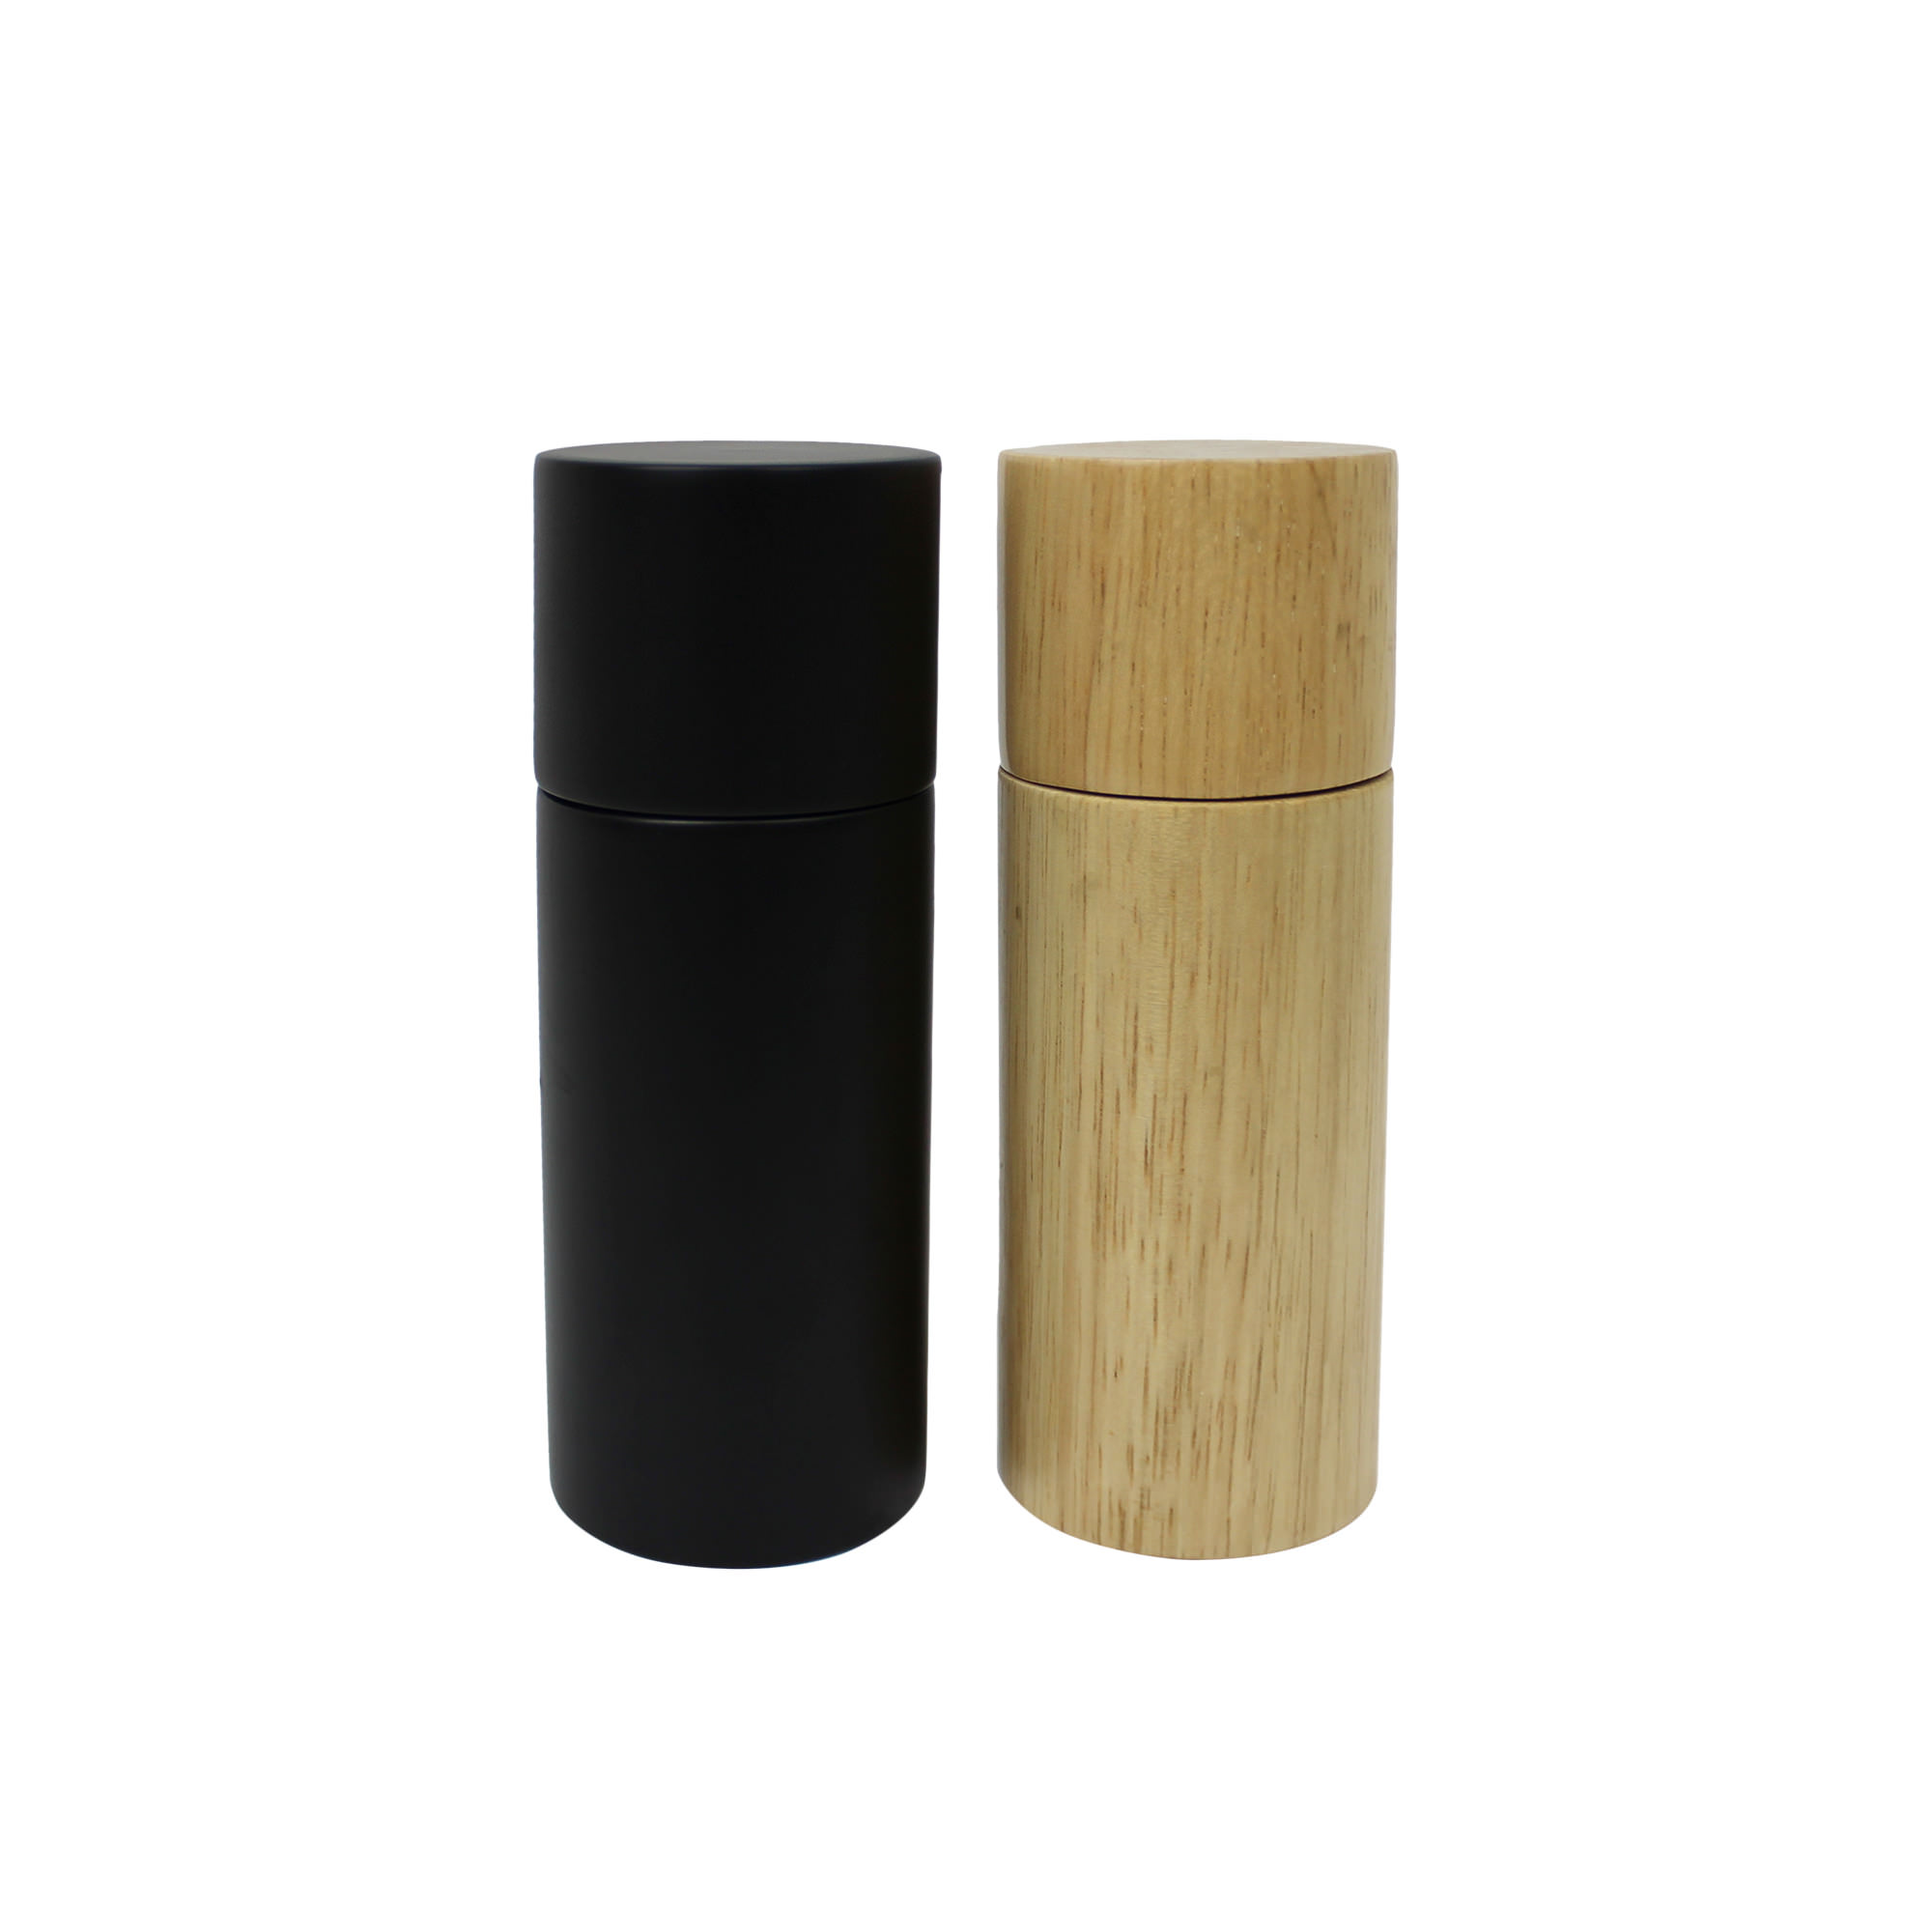 Bialetti 2pc Salt & Pepper Grinder Set 15.5cm Black and Natural